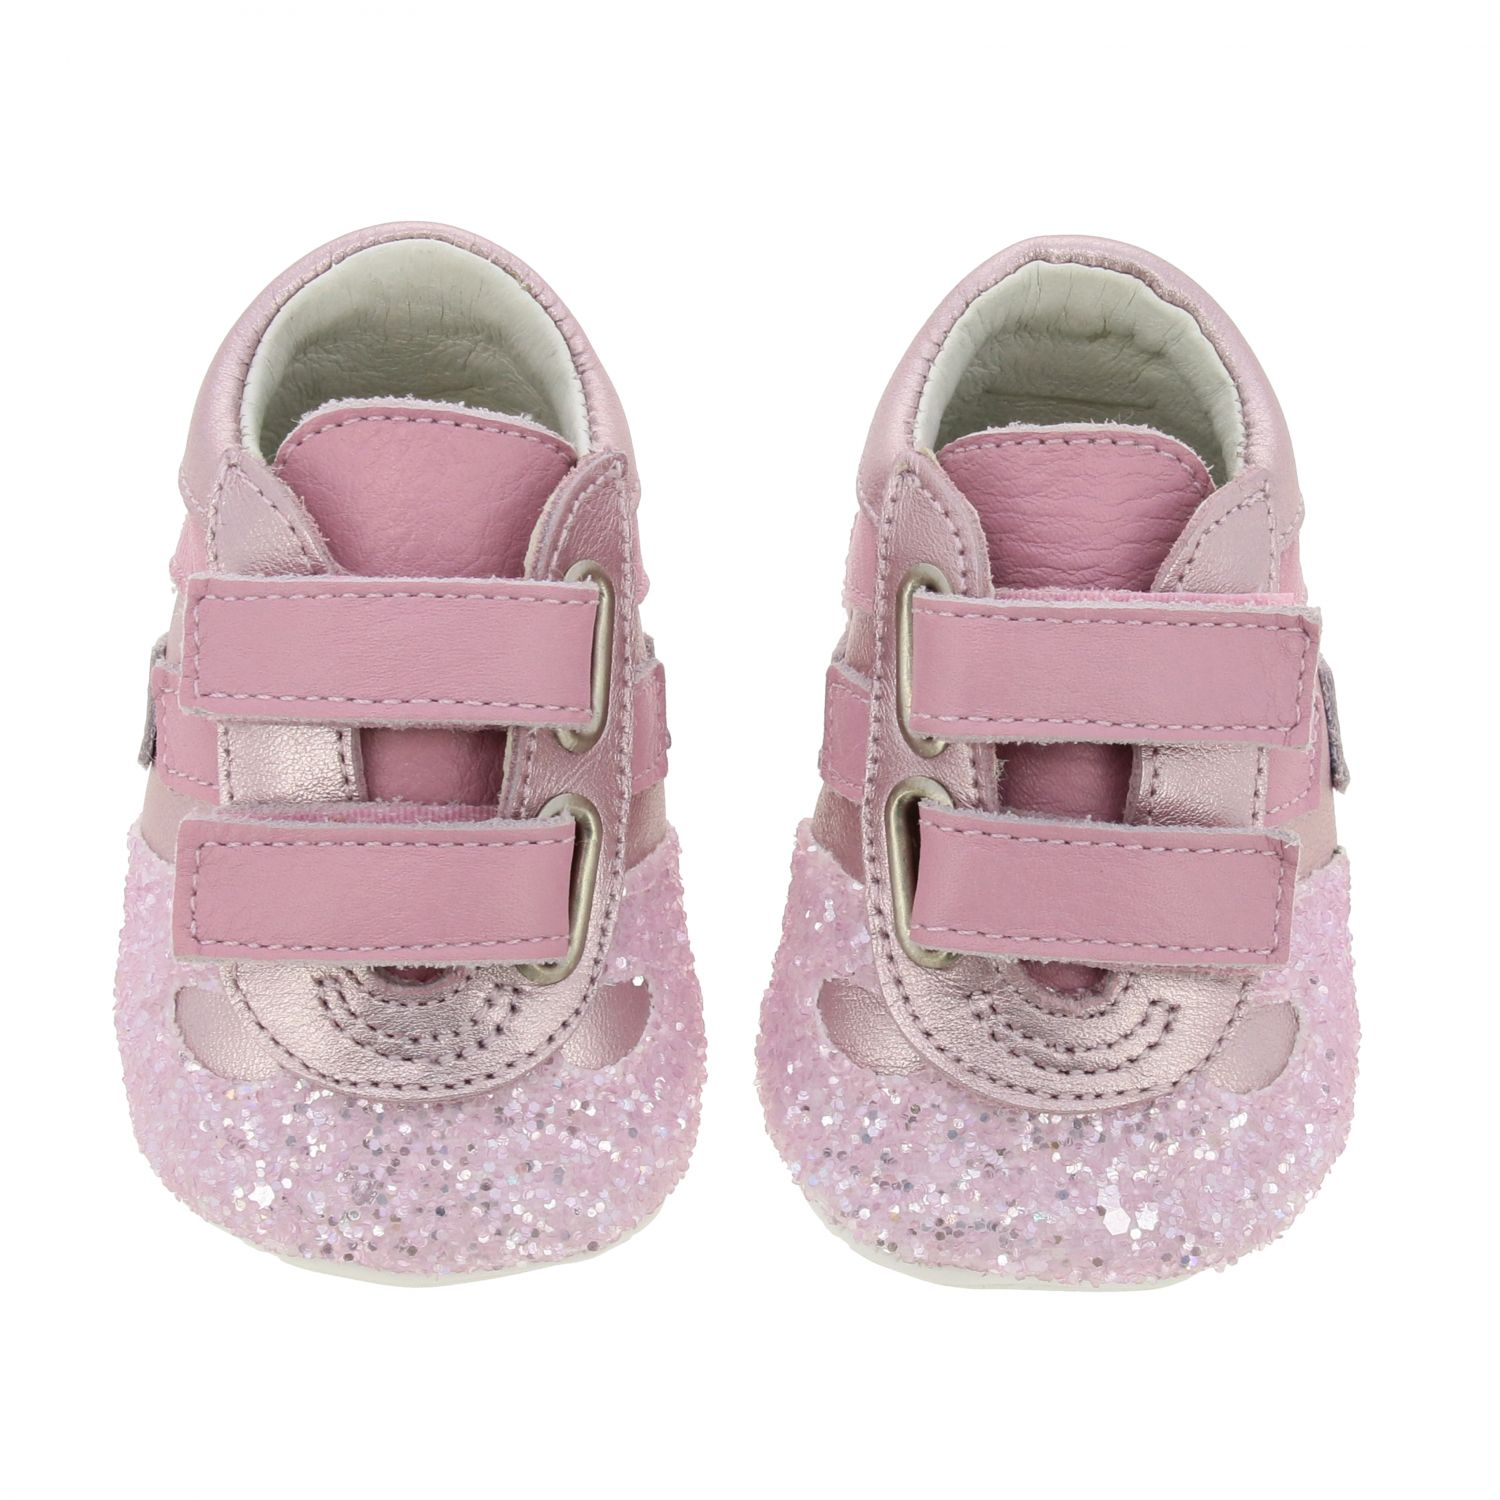 Olympia Hogan laminated leather and glitter sneakers with Velcro straps pink 3